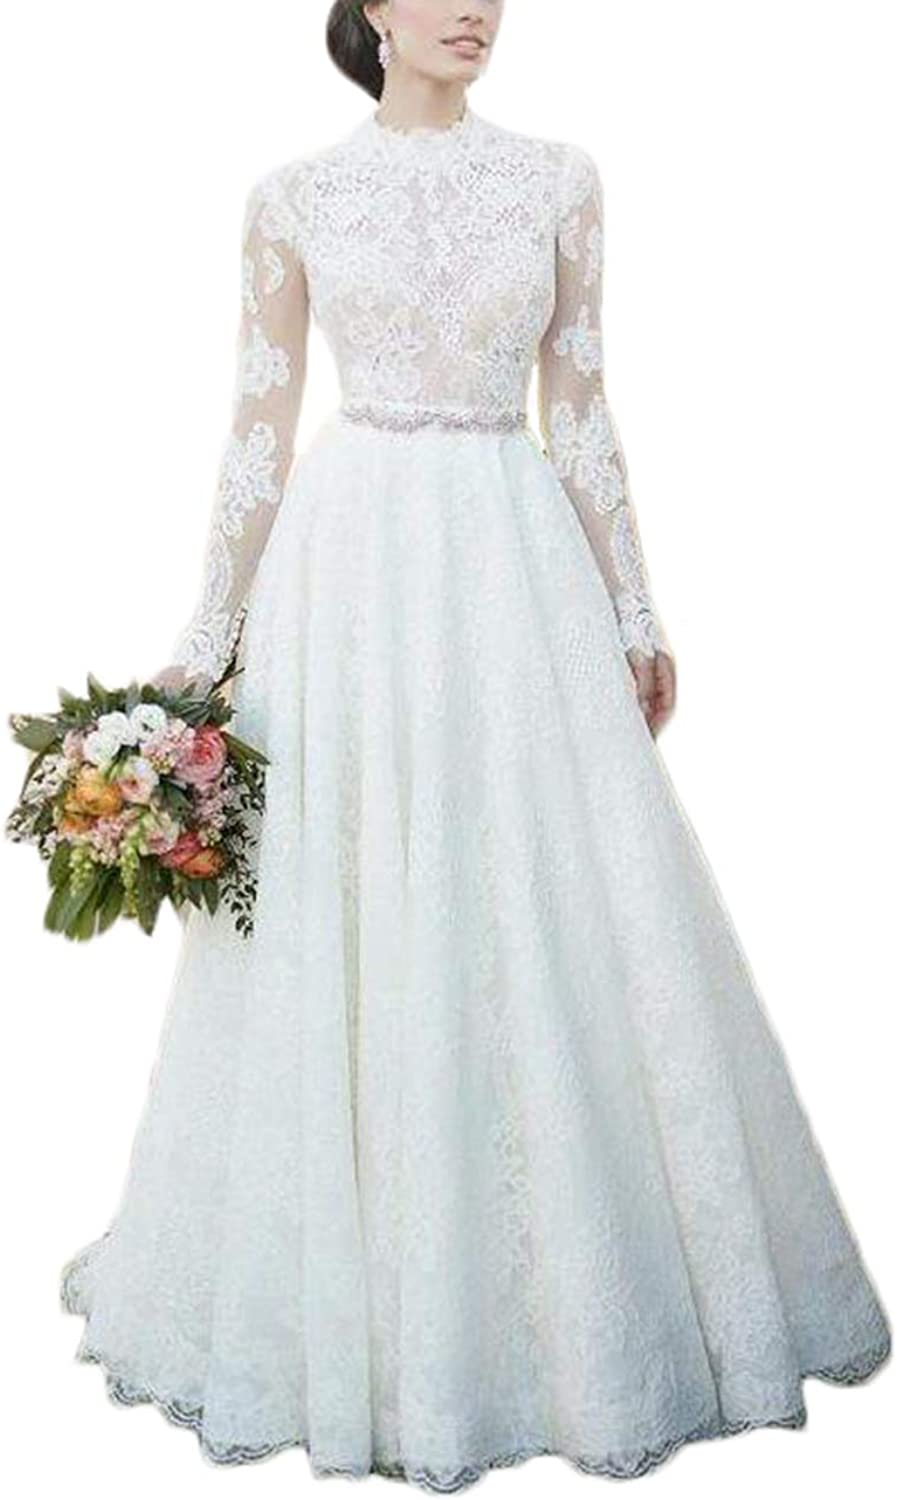 Alilith.Z Elegant Lace Wedding Dresses for Bride 2019 Long Sleeves Beaded Rhinestones Bridal Wedding Gowns for Women